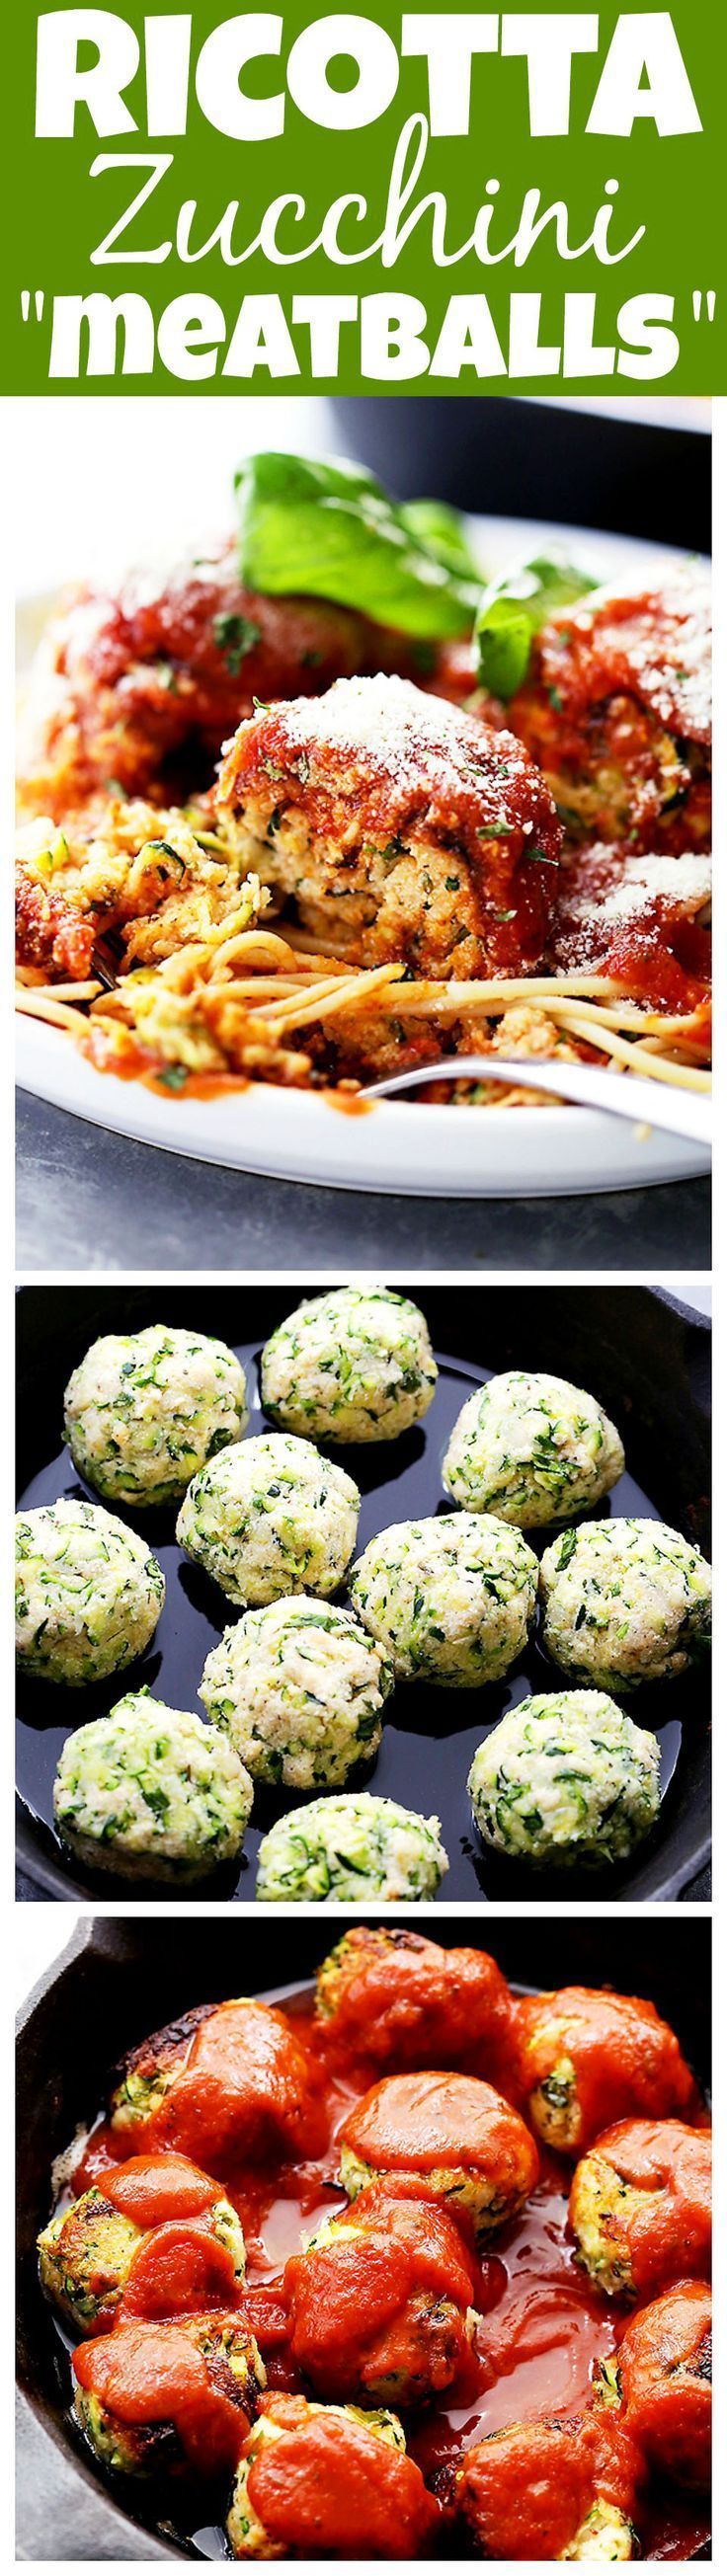 """Ricotta Zucchini """"Meatballs"""" – Delicious, melt-in-your-mouth-amazing zucchini meatballs with ricotta and parmesan cheese, topped with a warm and bubbly tomato sauce!"""